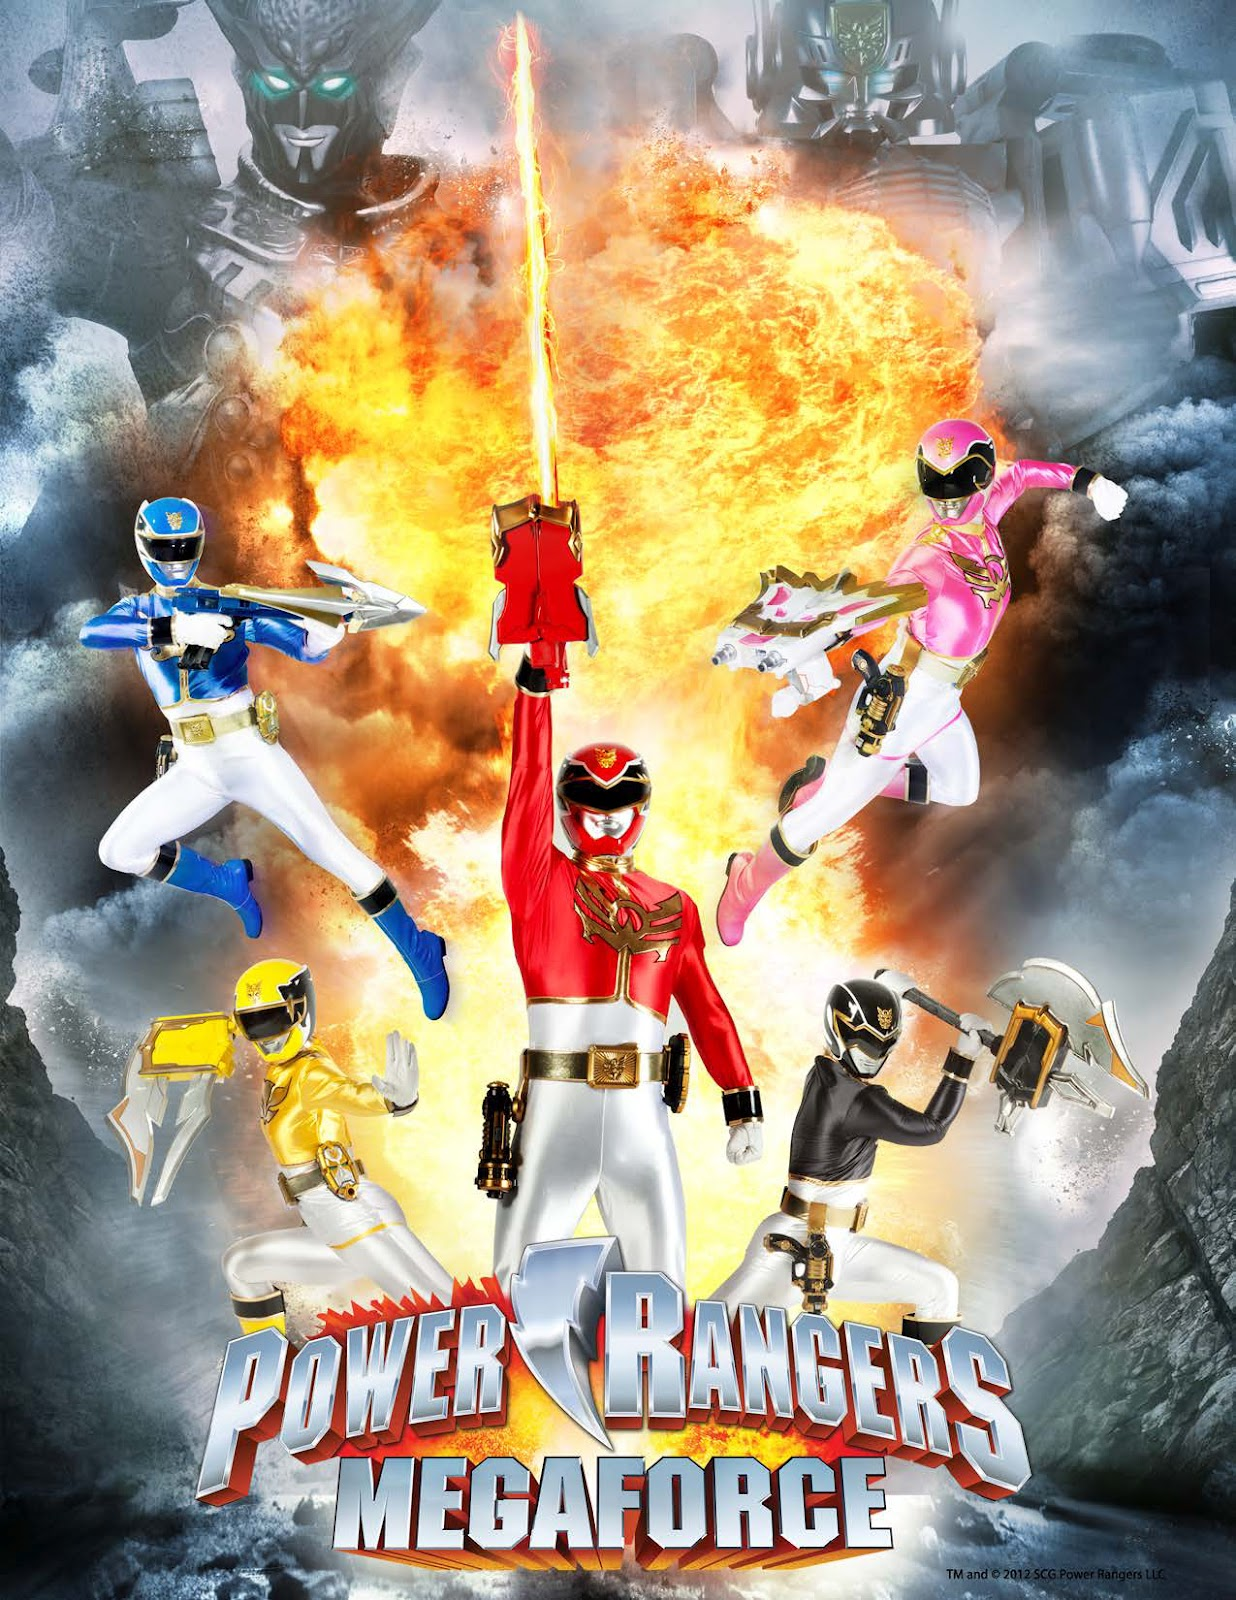 power rangers megafore